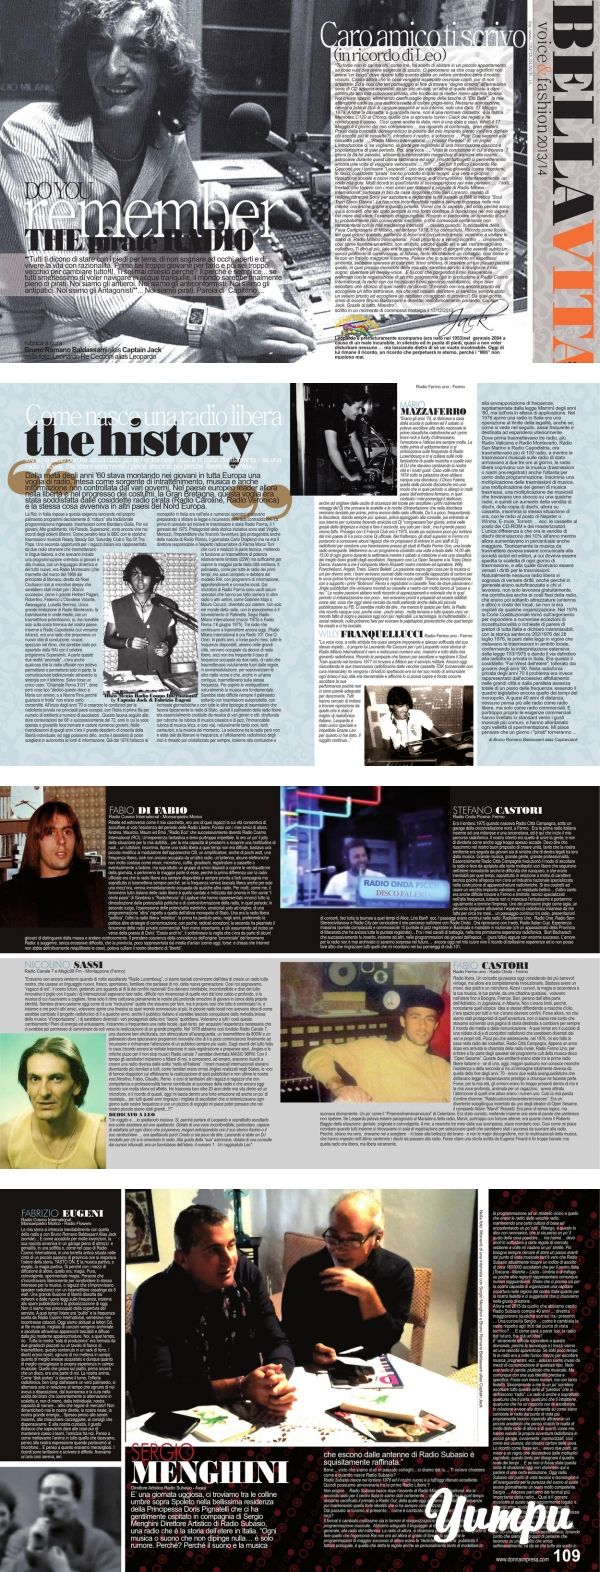 BELLA VITA present: Do you remenber the pirate radio by Bruno Baldassarri - Magazine with 6 pages: Donna Impresa Magazine/Bella Vita: Do you remenber the pirate radio? tutto su http://www.donnaimpresa.com con Bruno Baldassarri alias Captain Jack, Leonardo Rececconi, Stefano Castori, Willy Frenquellucci, Mario Mazzaferro, Nicolino Sassi, Fabrizio Eugeni, Fabio Castori e Fabio Di Fabio. Sergio Menghini e Viola Valentino http://www.captainjack.it